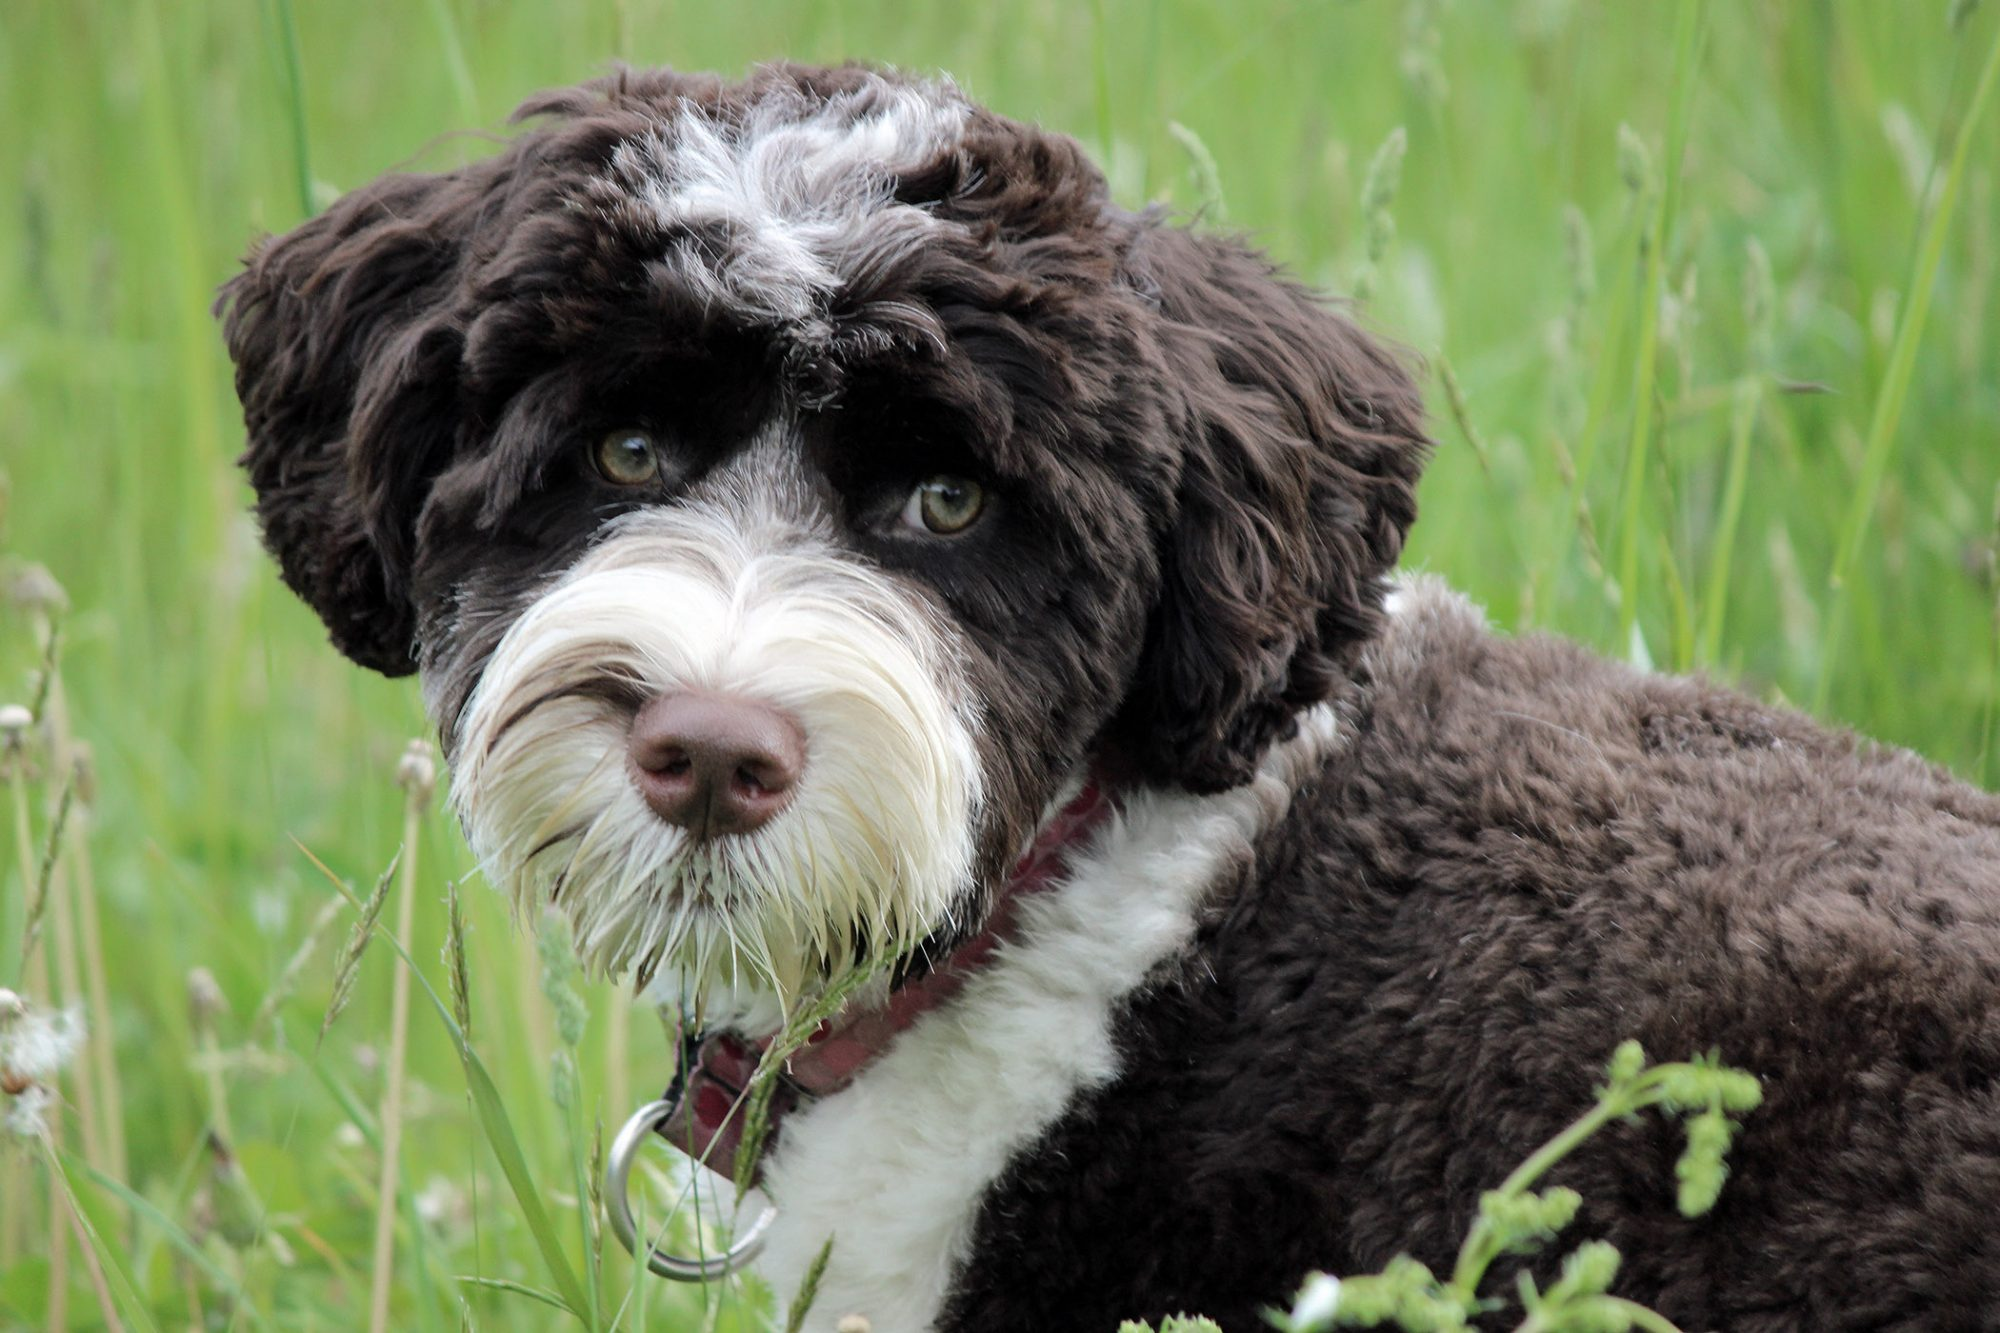 portuguese water dog puppy in grass